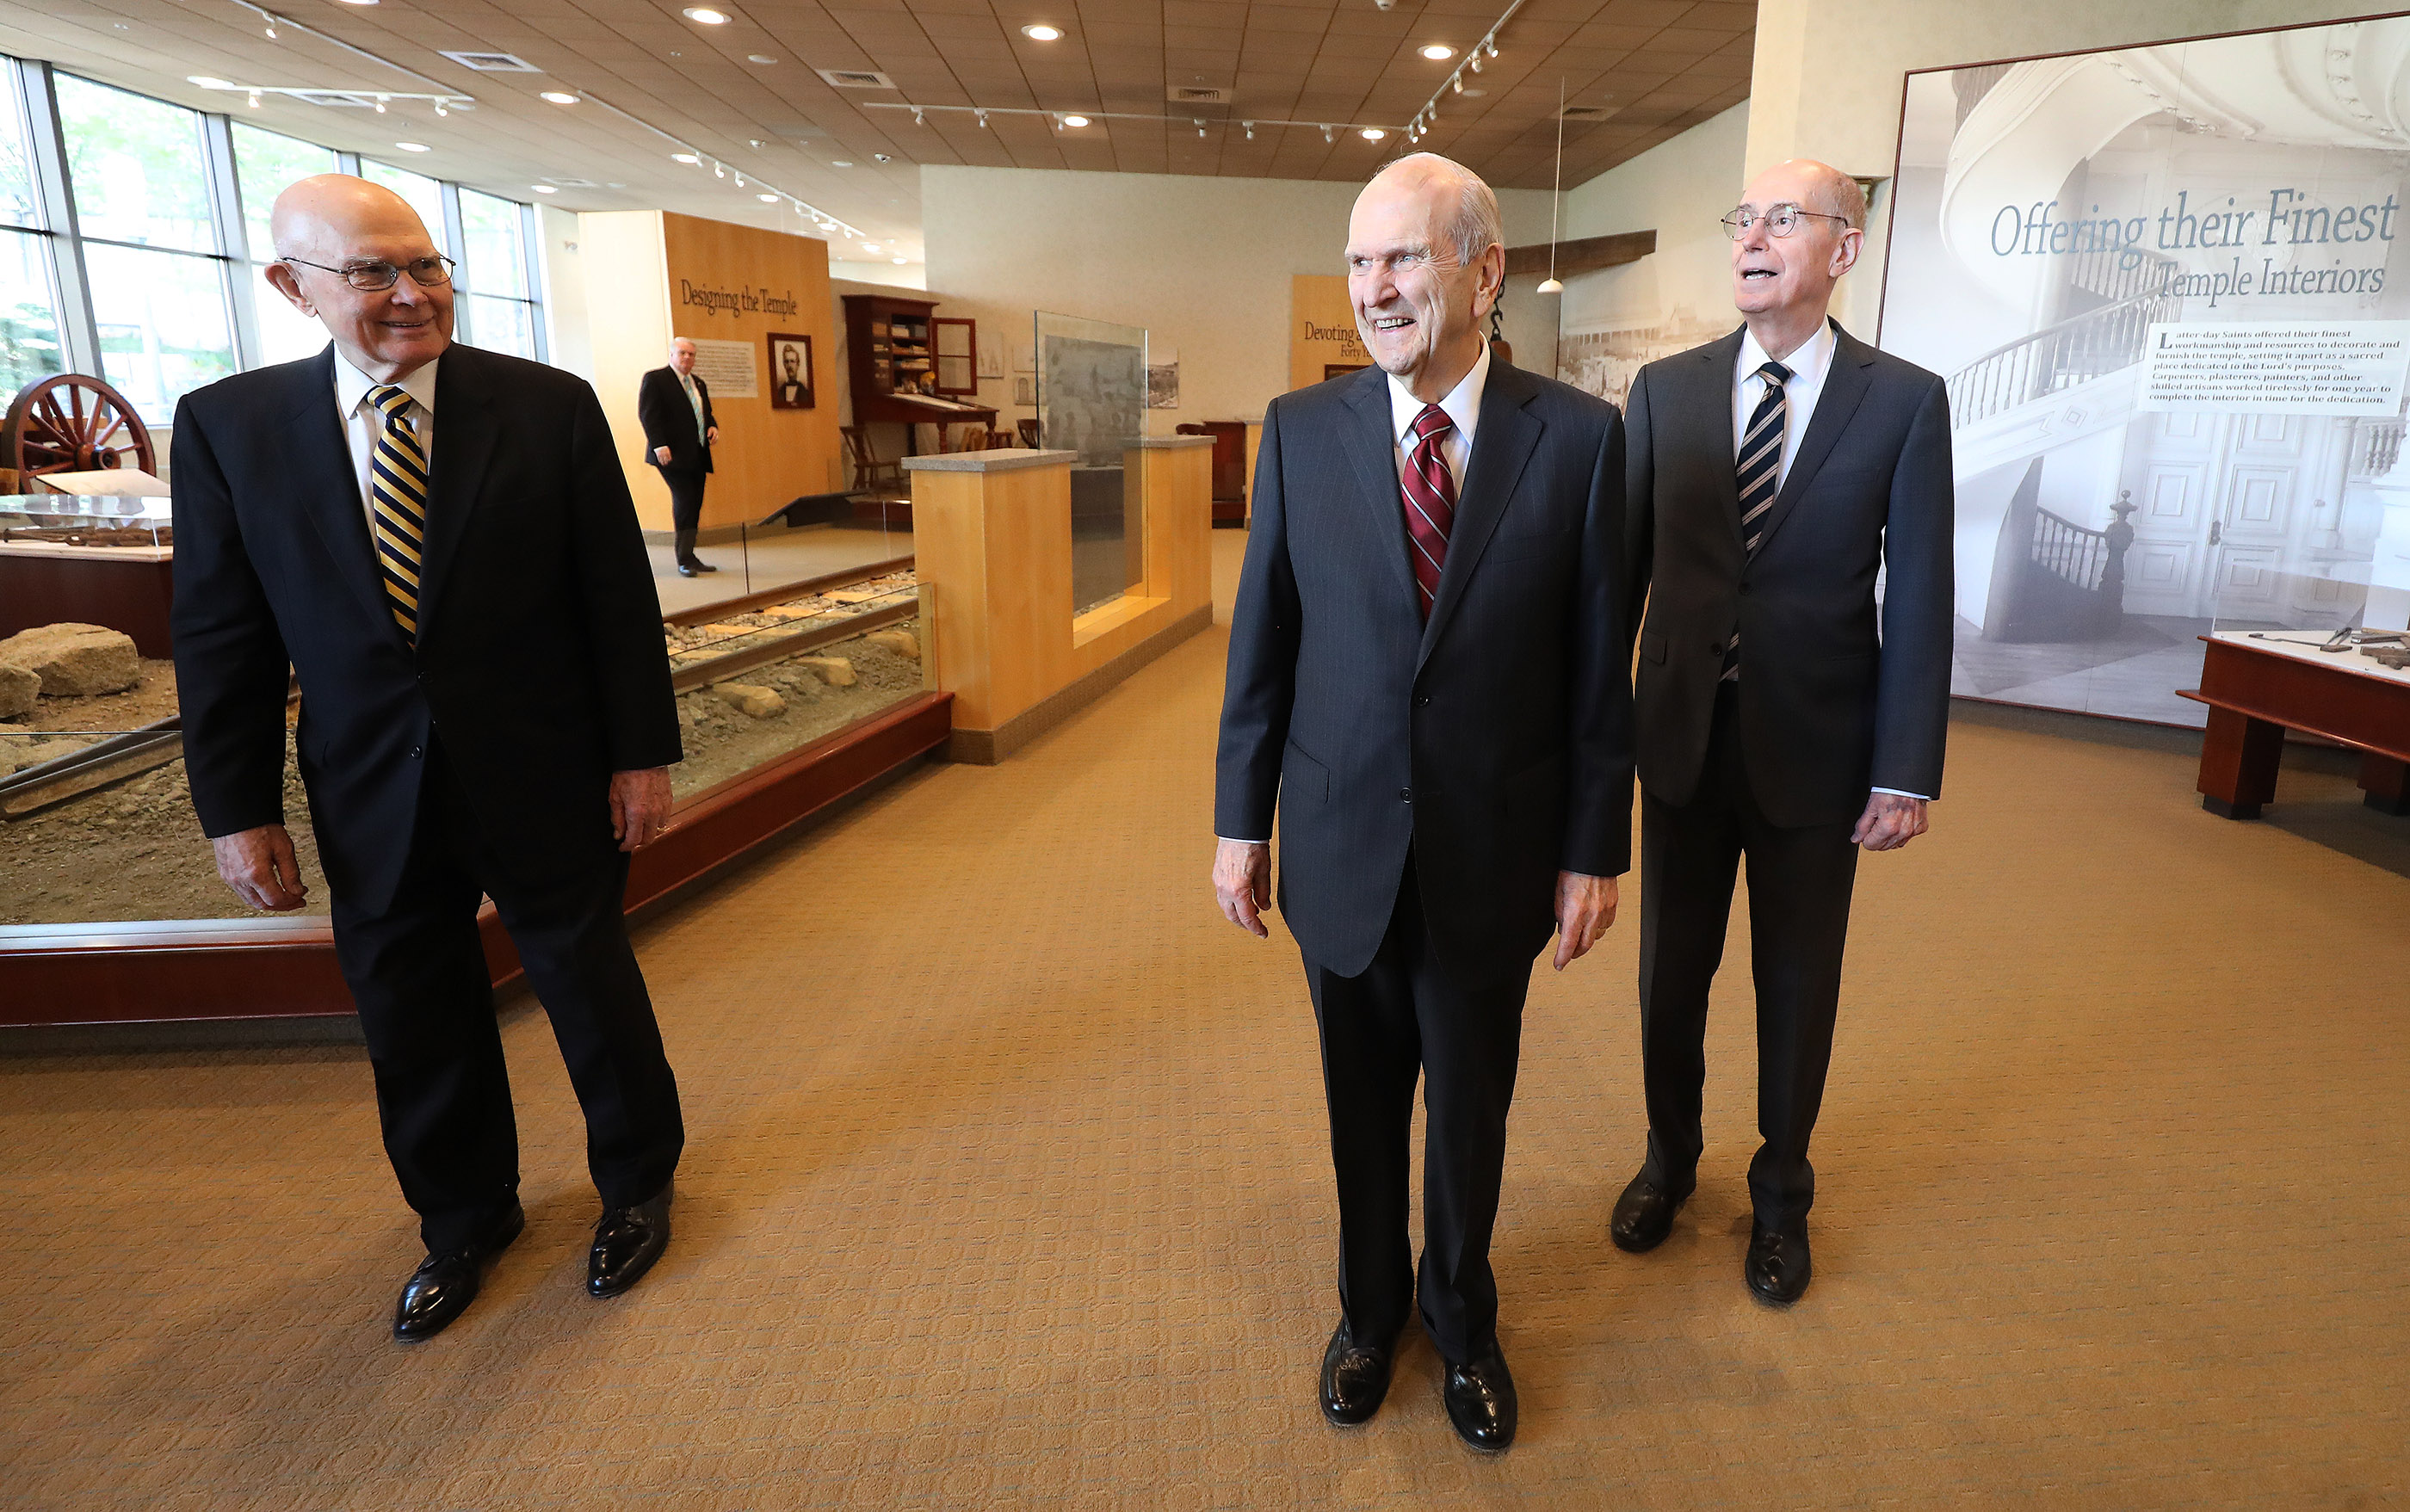 President Russell M. Nelson of The Church of Jesus Christ of Latter-day Saints, center, and his counselors, President Dallin H. Oaks, first counselor in the First Presidency, left, and President Henry B. Eyring, second counselor in the First Presidency, right, walk through the South visitors' center prior to a press conference in Salt Lake City on Friday, April 19, 2019.